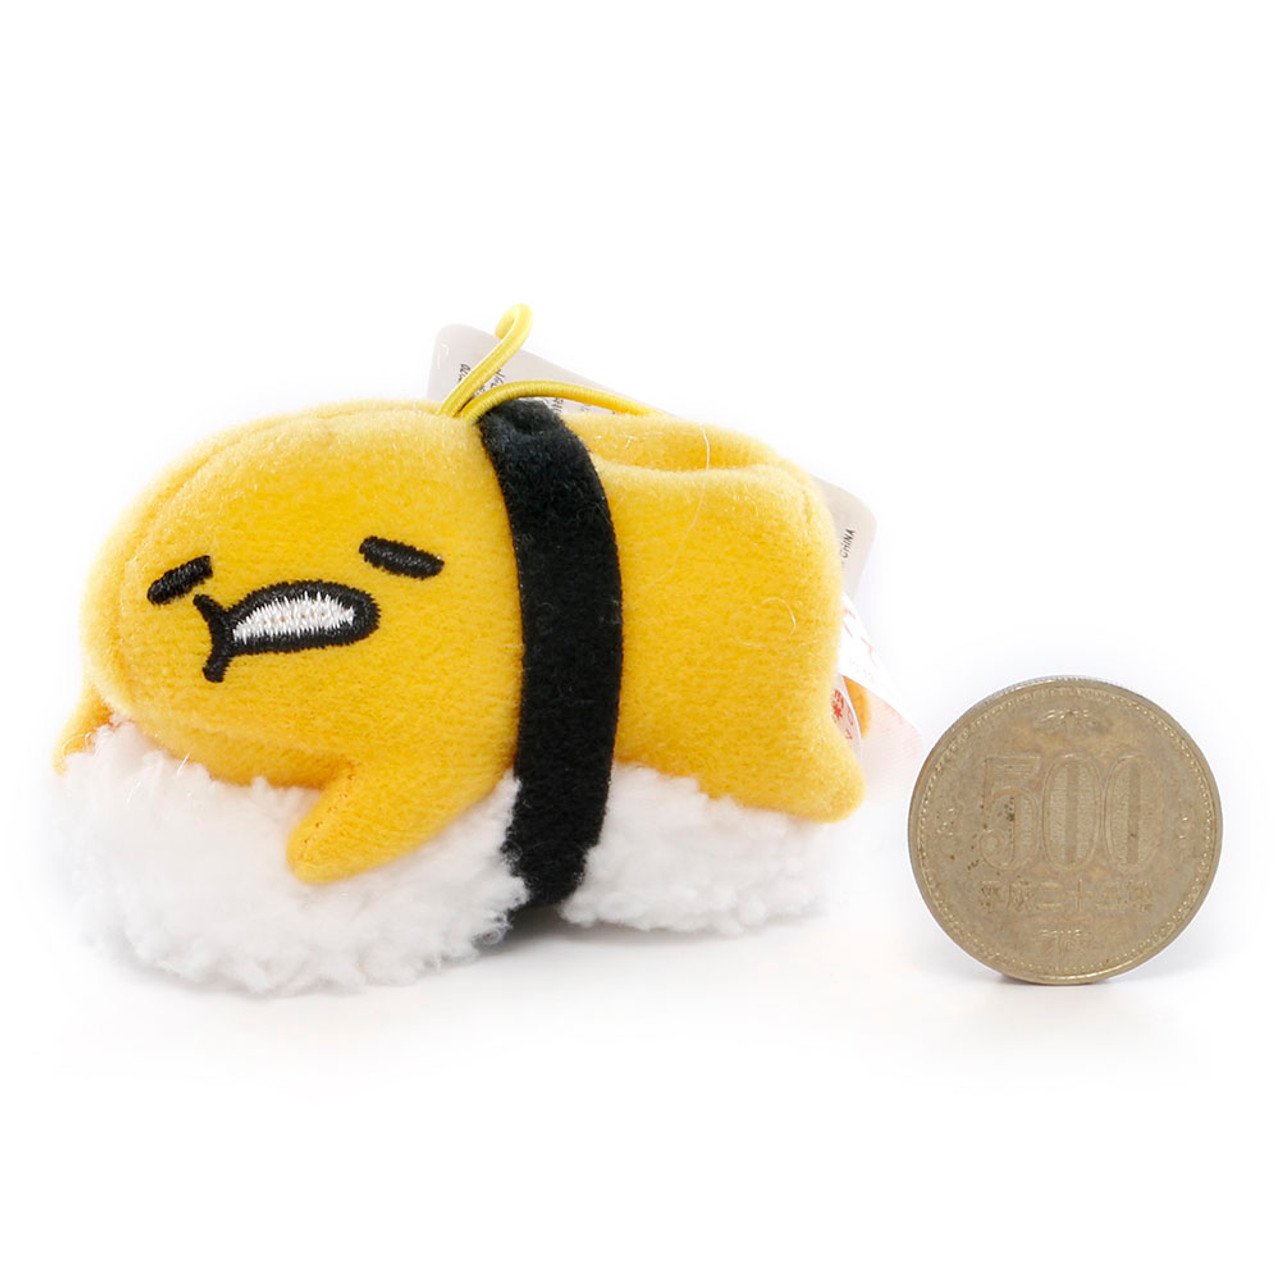 Sanrio Gudetama Lazy Egg Sushi Mascot Plush Charms - Yolk Sushi ( Proportion )